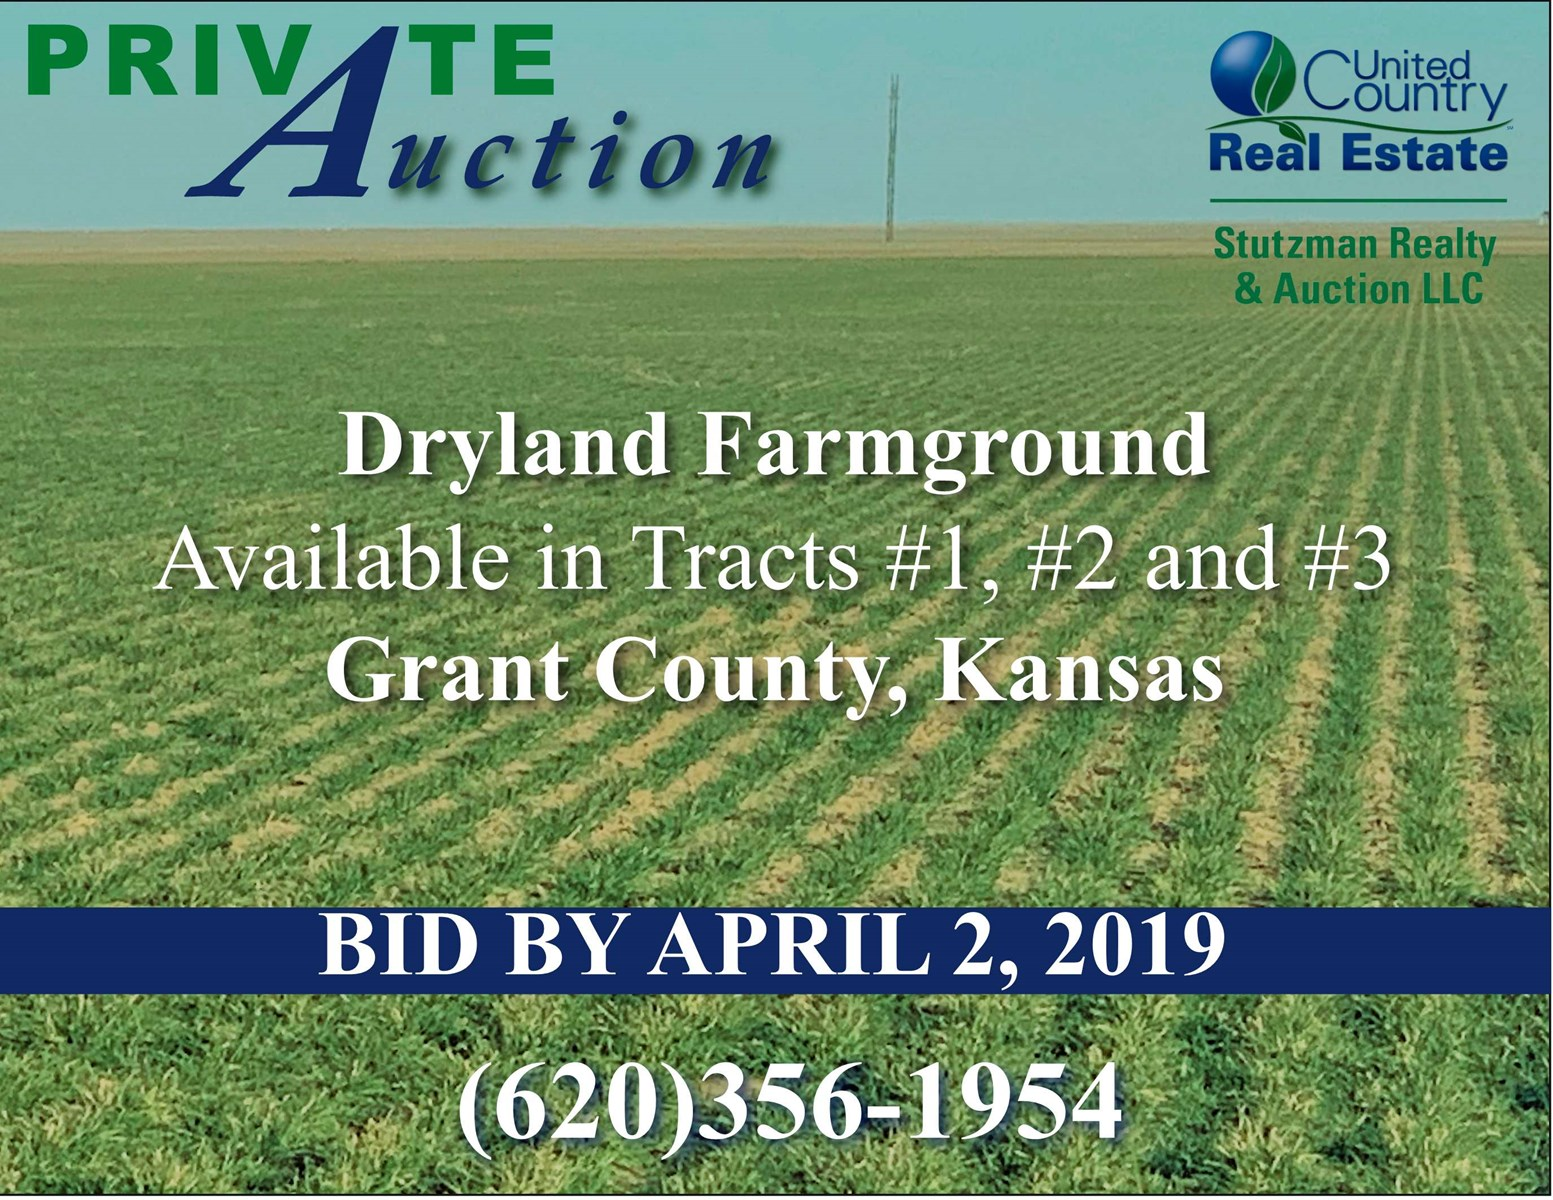 GRANT COUNTY, KS - 472 ACRE FARM LAND - PRIVATE AUCTION